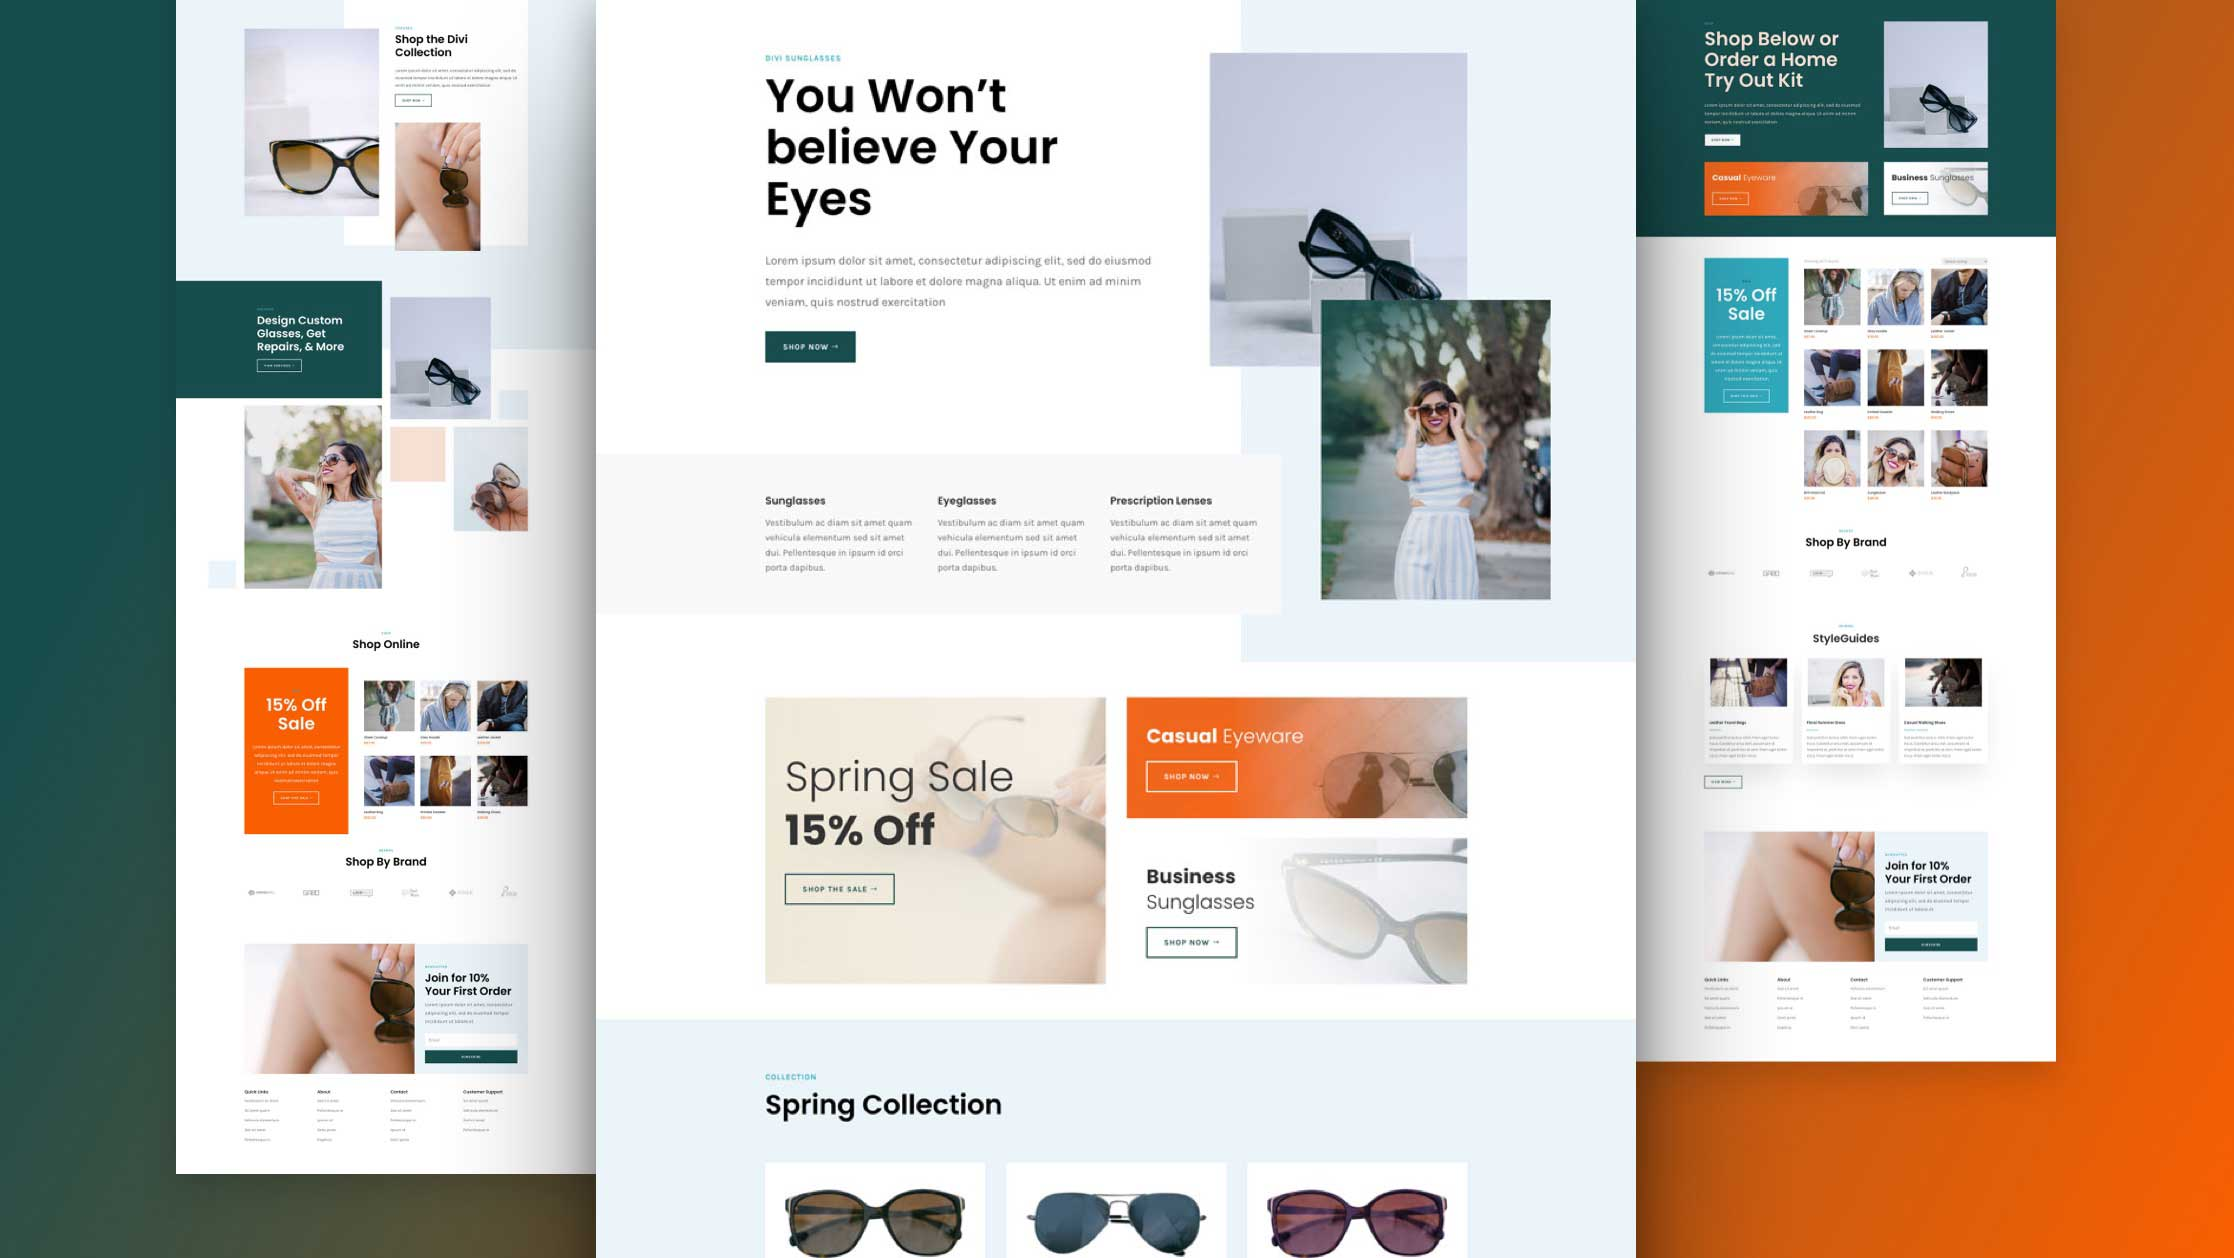 divi sunglasses shop layout pack featured image - How to convert visitors into sales on your Divi eCommerce site in these easy steps